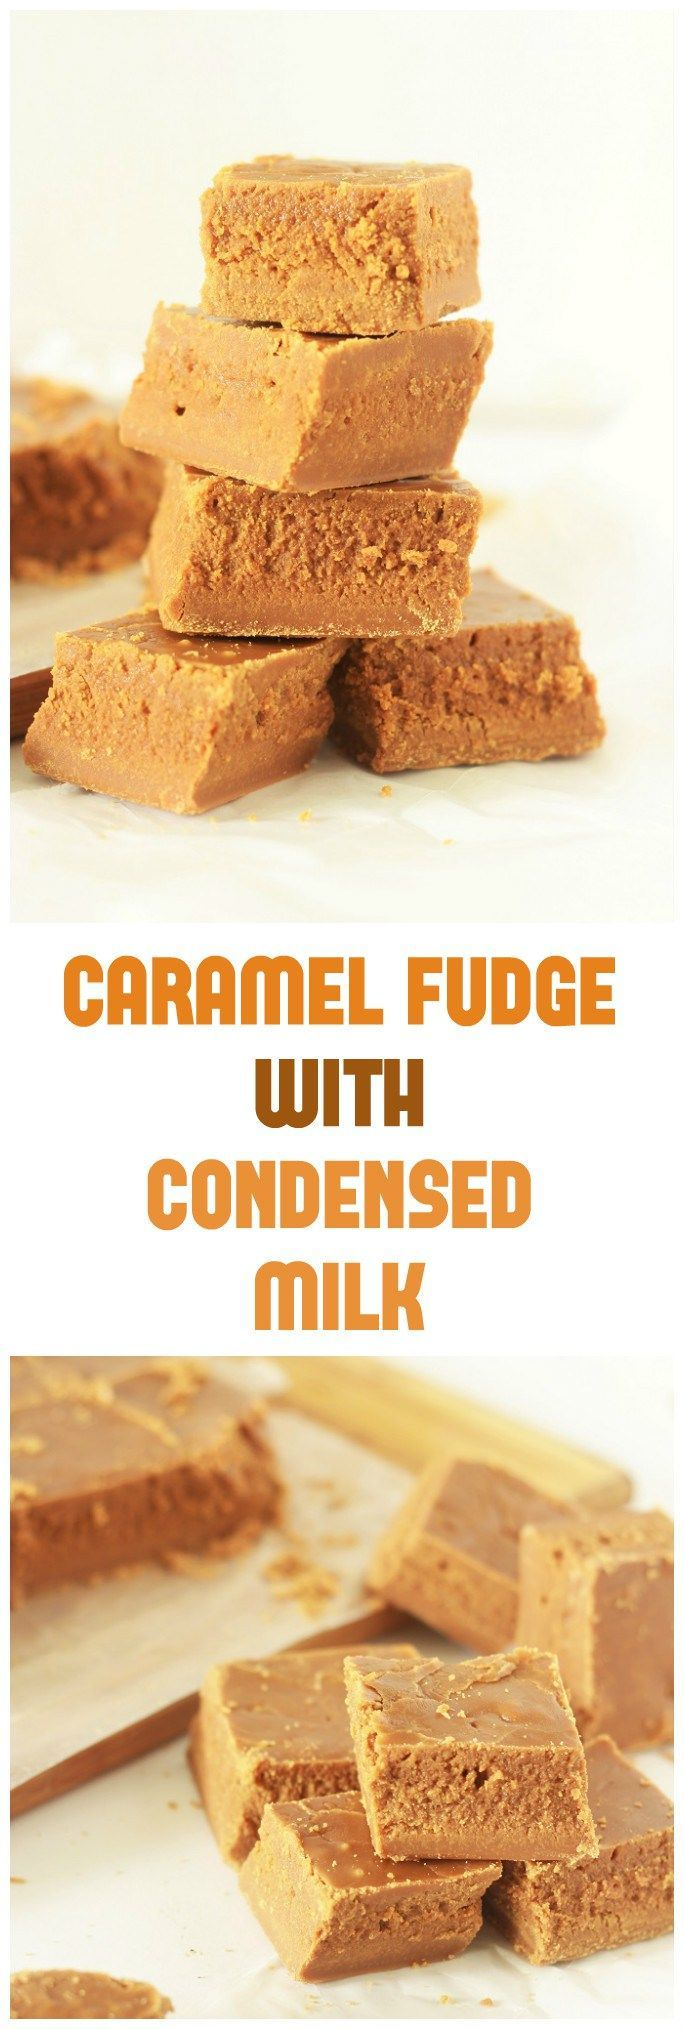 Easy Caramel Fudge With Condensed Milk Recipe Halaal Recipes Fudge Recipe Condensed Milk Sweetened Condensed Milk Recipes Fudge With Condensed Milk